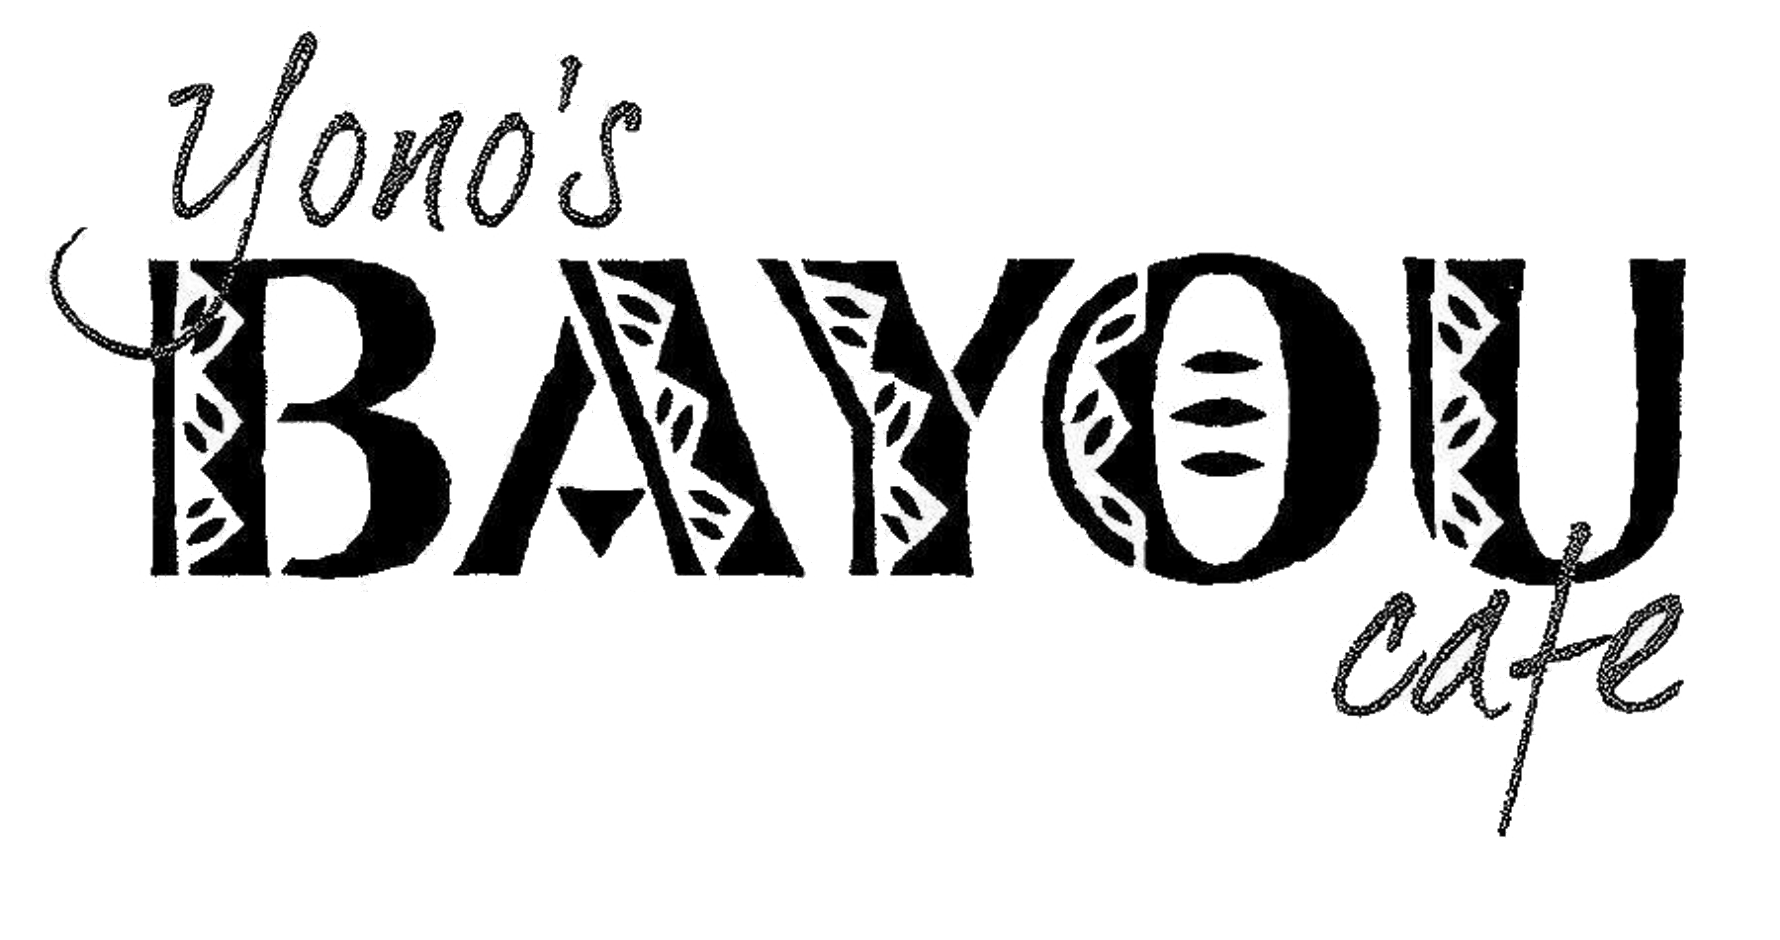 Logo of Yono's Bayou cafe in black letters